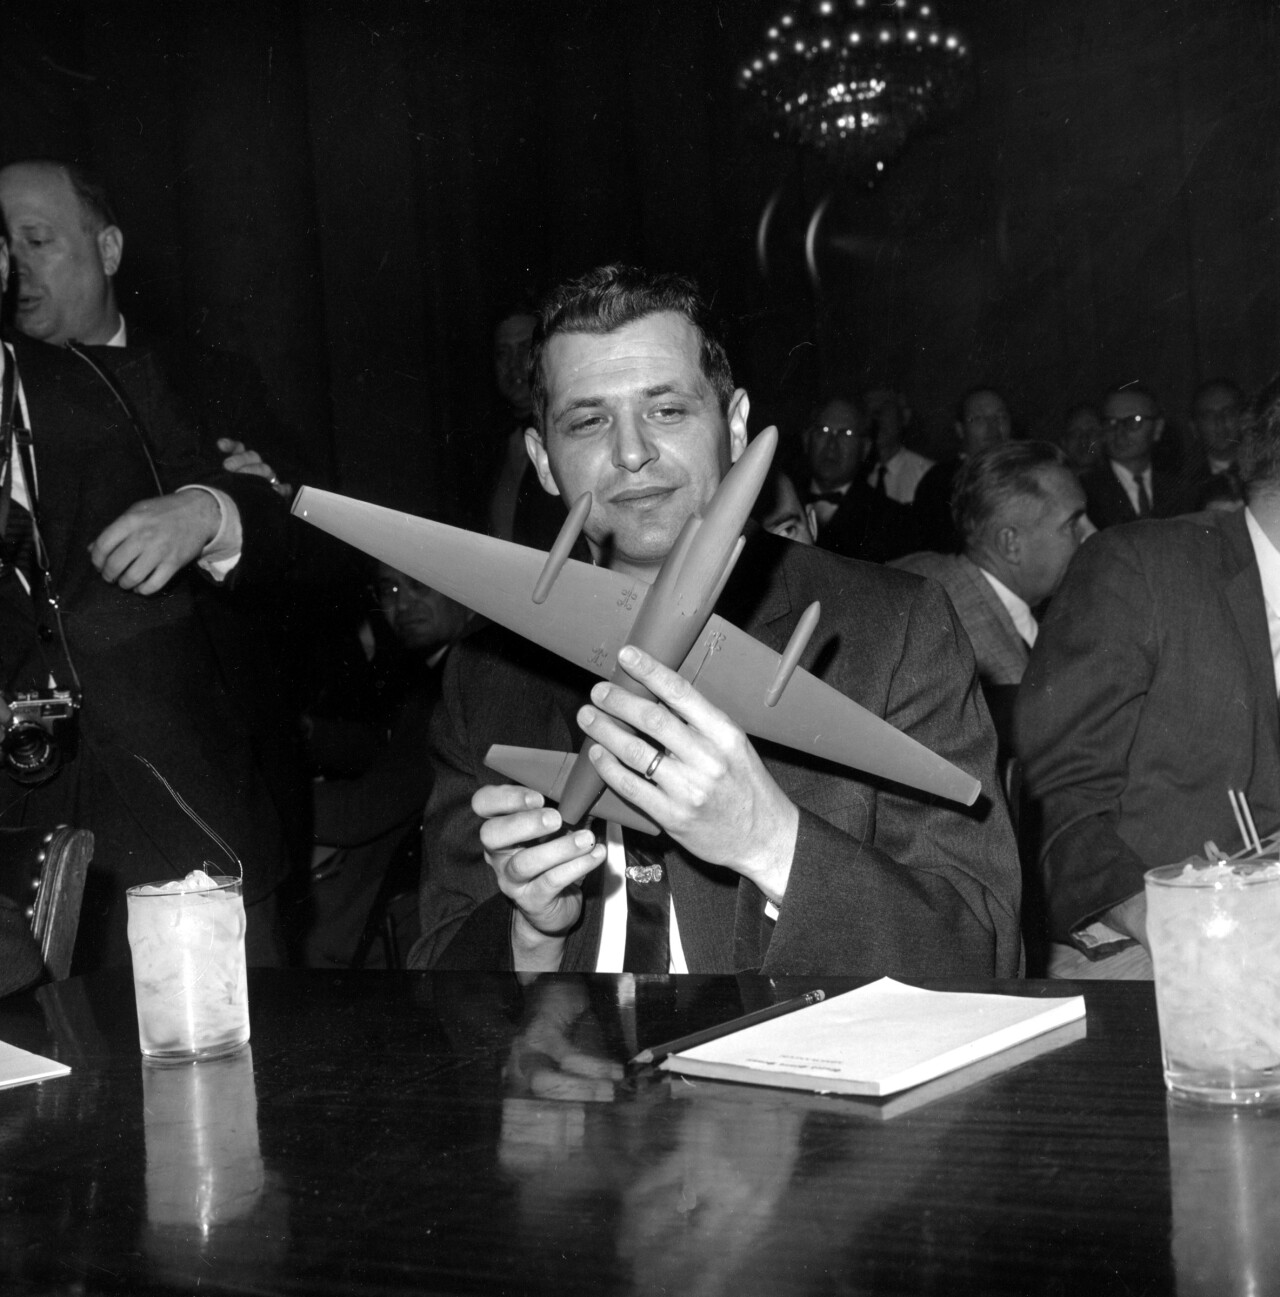 U-2 spy plane pilot Francis Gary Powers sits in the witness chair of the Senate Armed Services Committee in Washington, D.C. on March 6, 1962. This is his first public appearance since release by the Russians on Feb. 10. He is holding a U-2 model plane. (AP Photo)